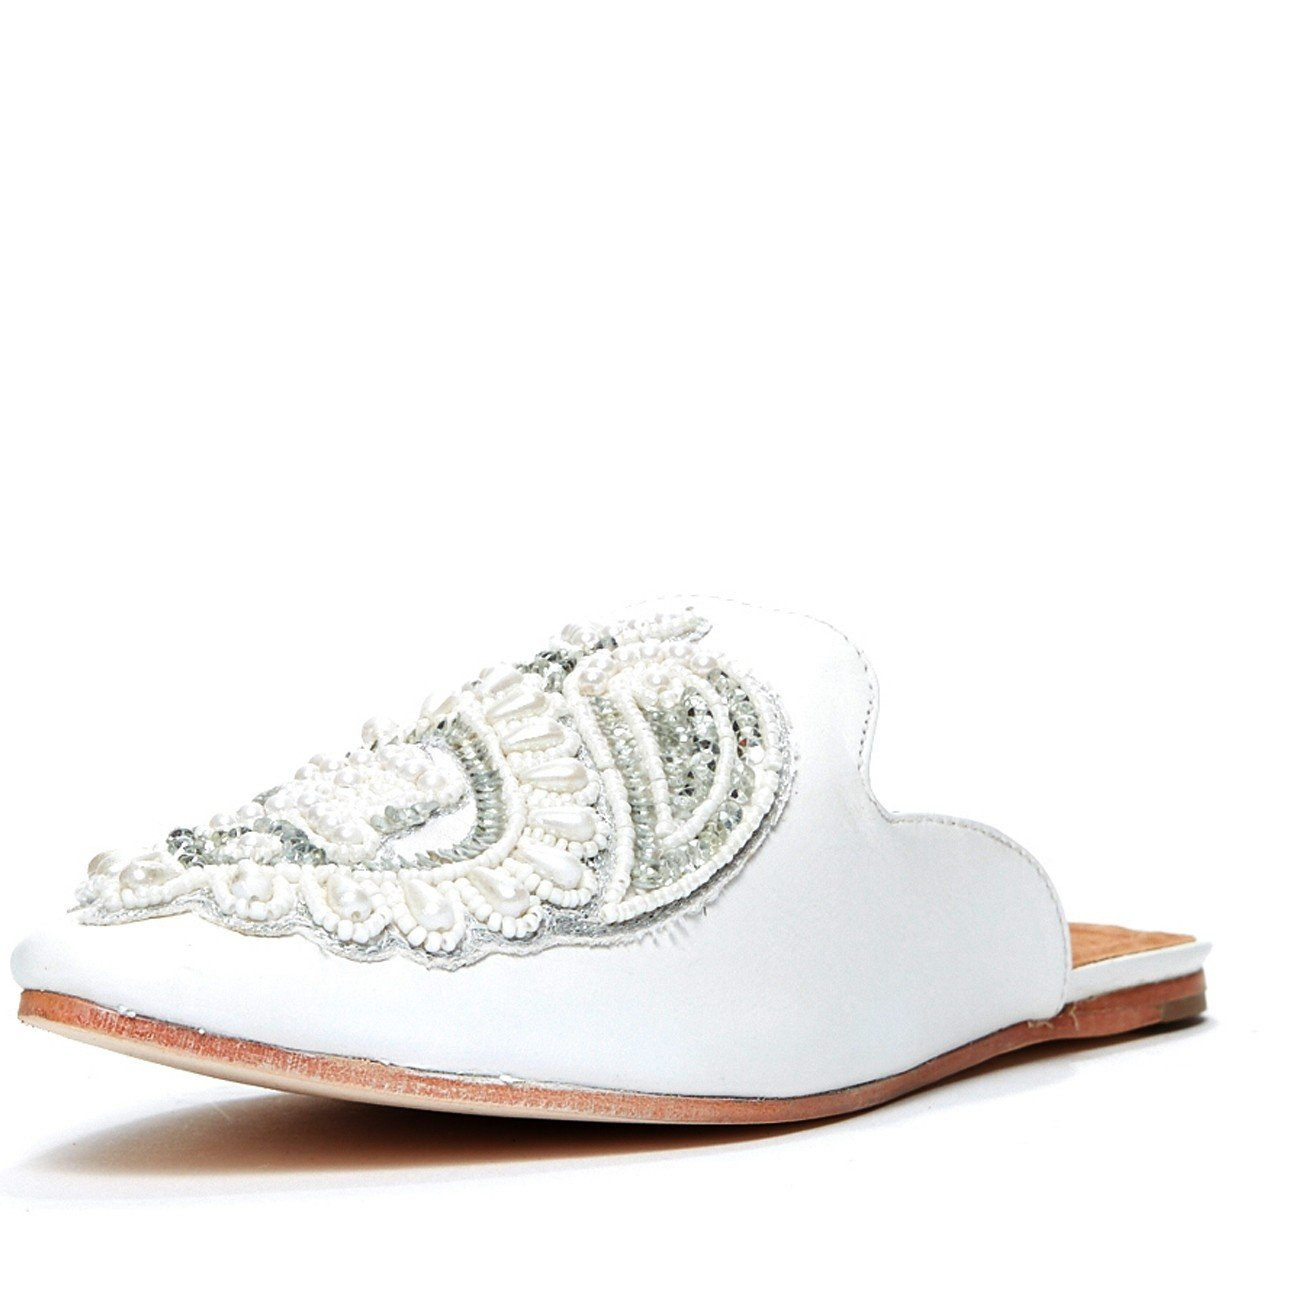 Jeffrey Campbell 'Varada' beaded mule, white. 9.5 by Jeffrey Campbell